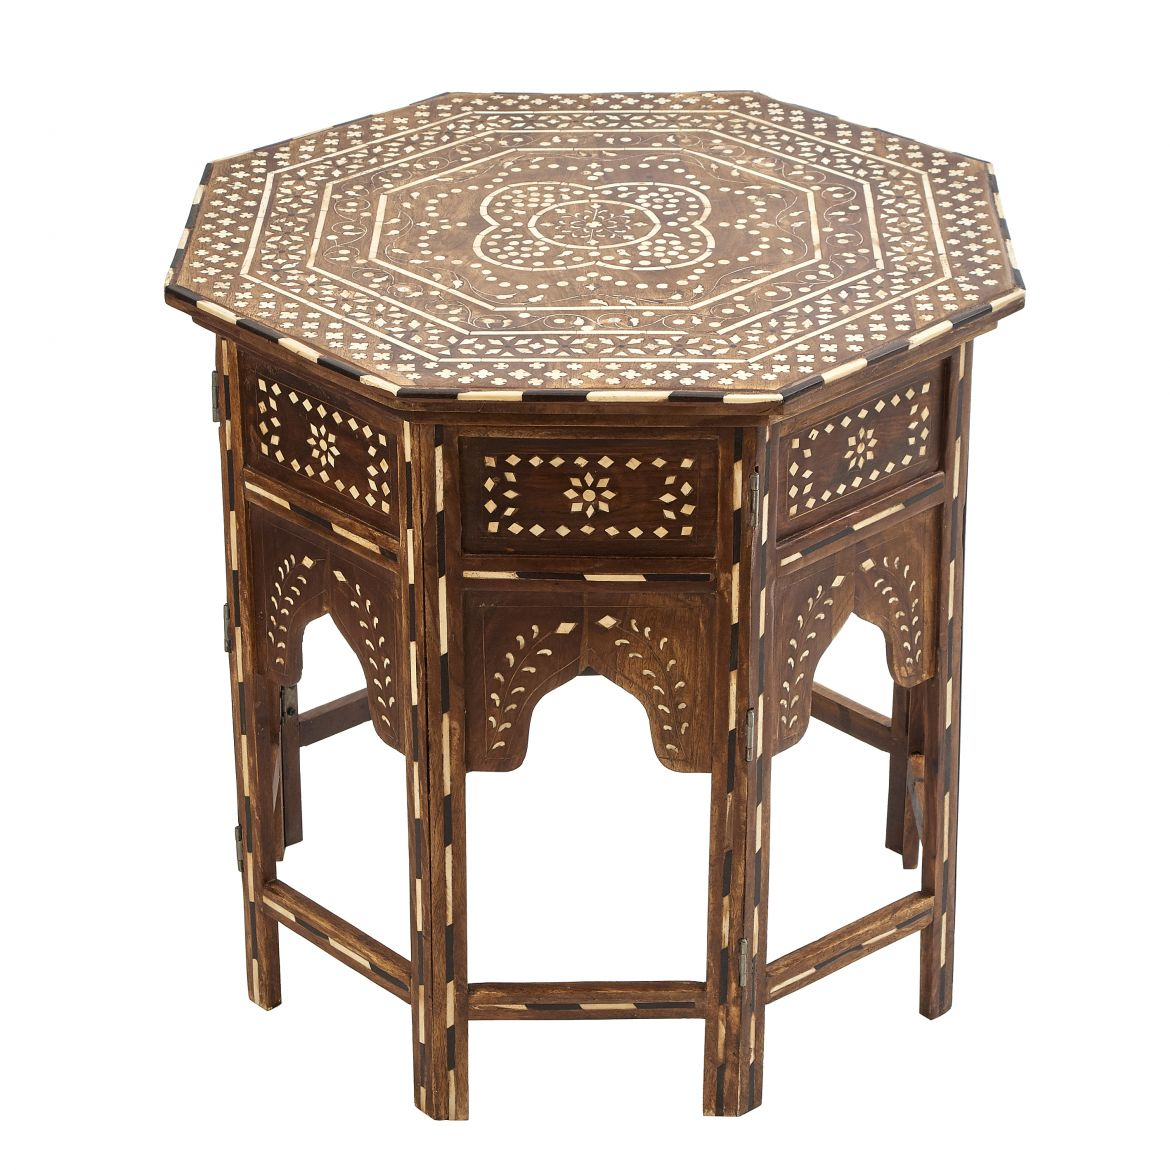 Octagonal Inlaid Table